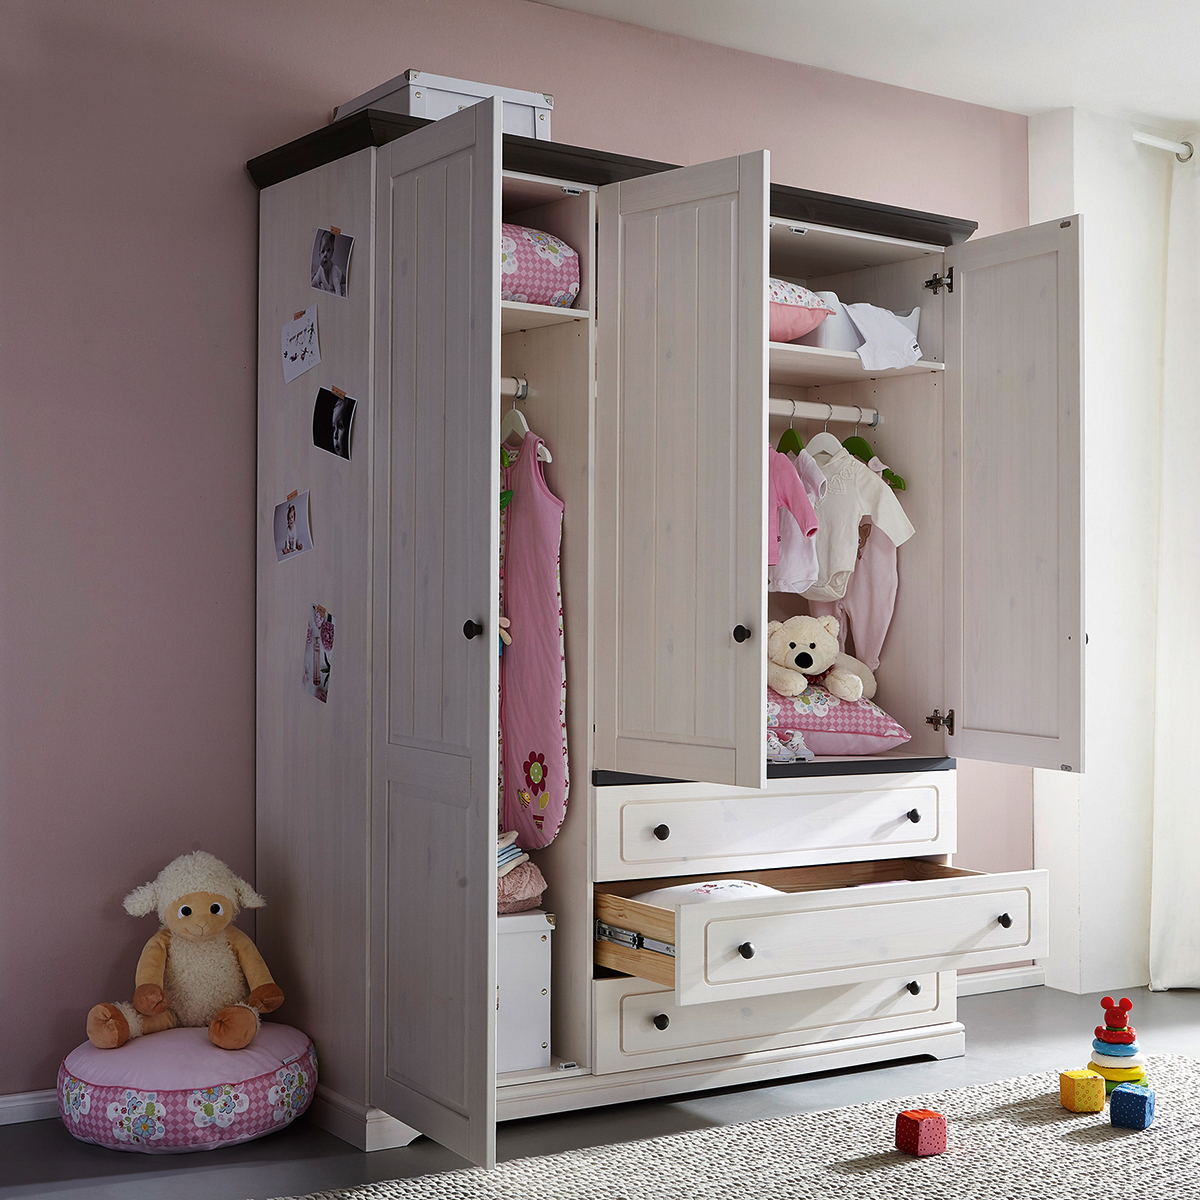 kleiderschr nke baby schlafzimmer kommode dekorieren bettw sche 220x240 cm bettdecken. Black Bedroom Furniture Sets. Home Design Ideas